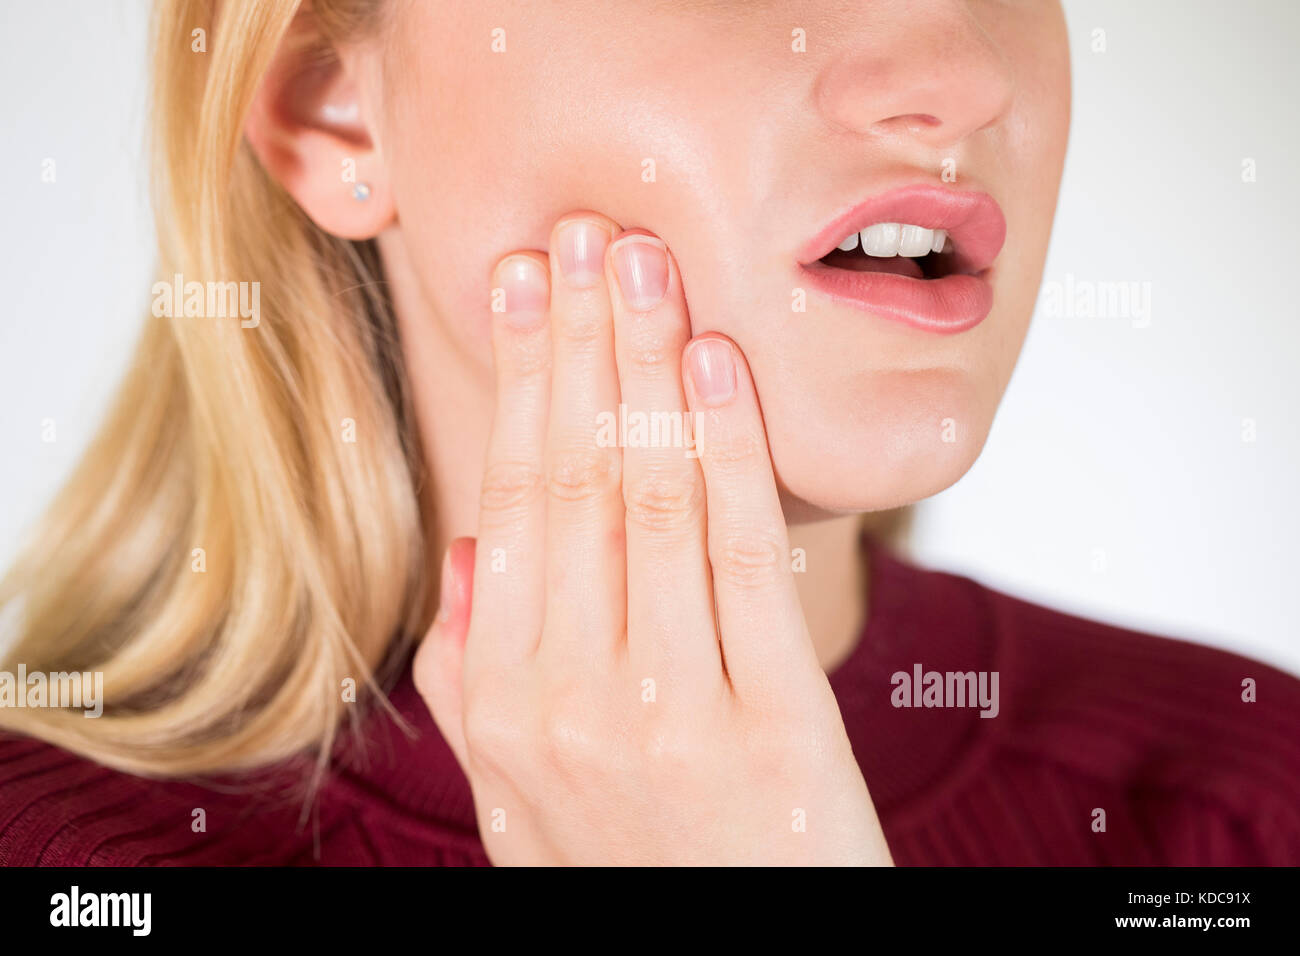 Studio Close Up Of Woman Suffering With Toothache - Stock Image